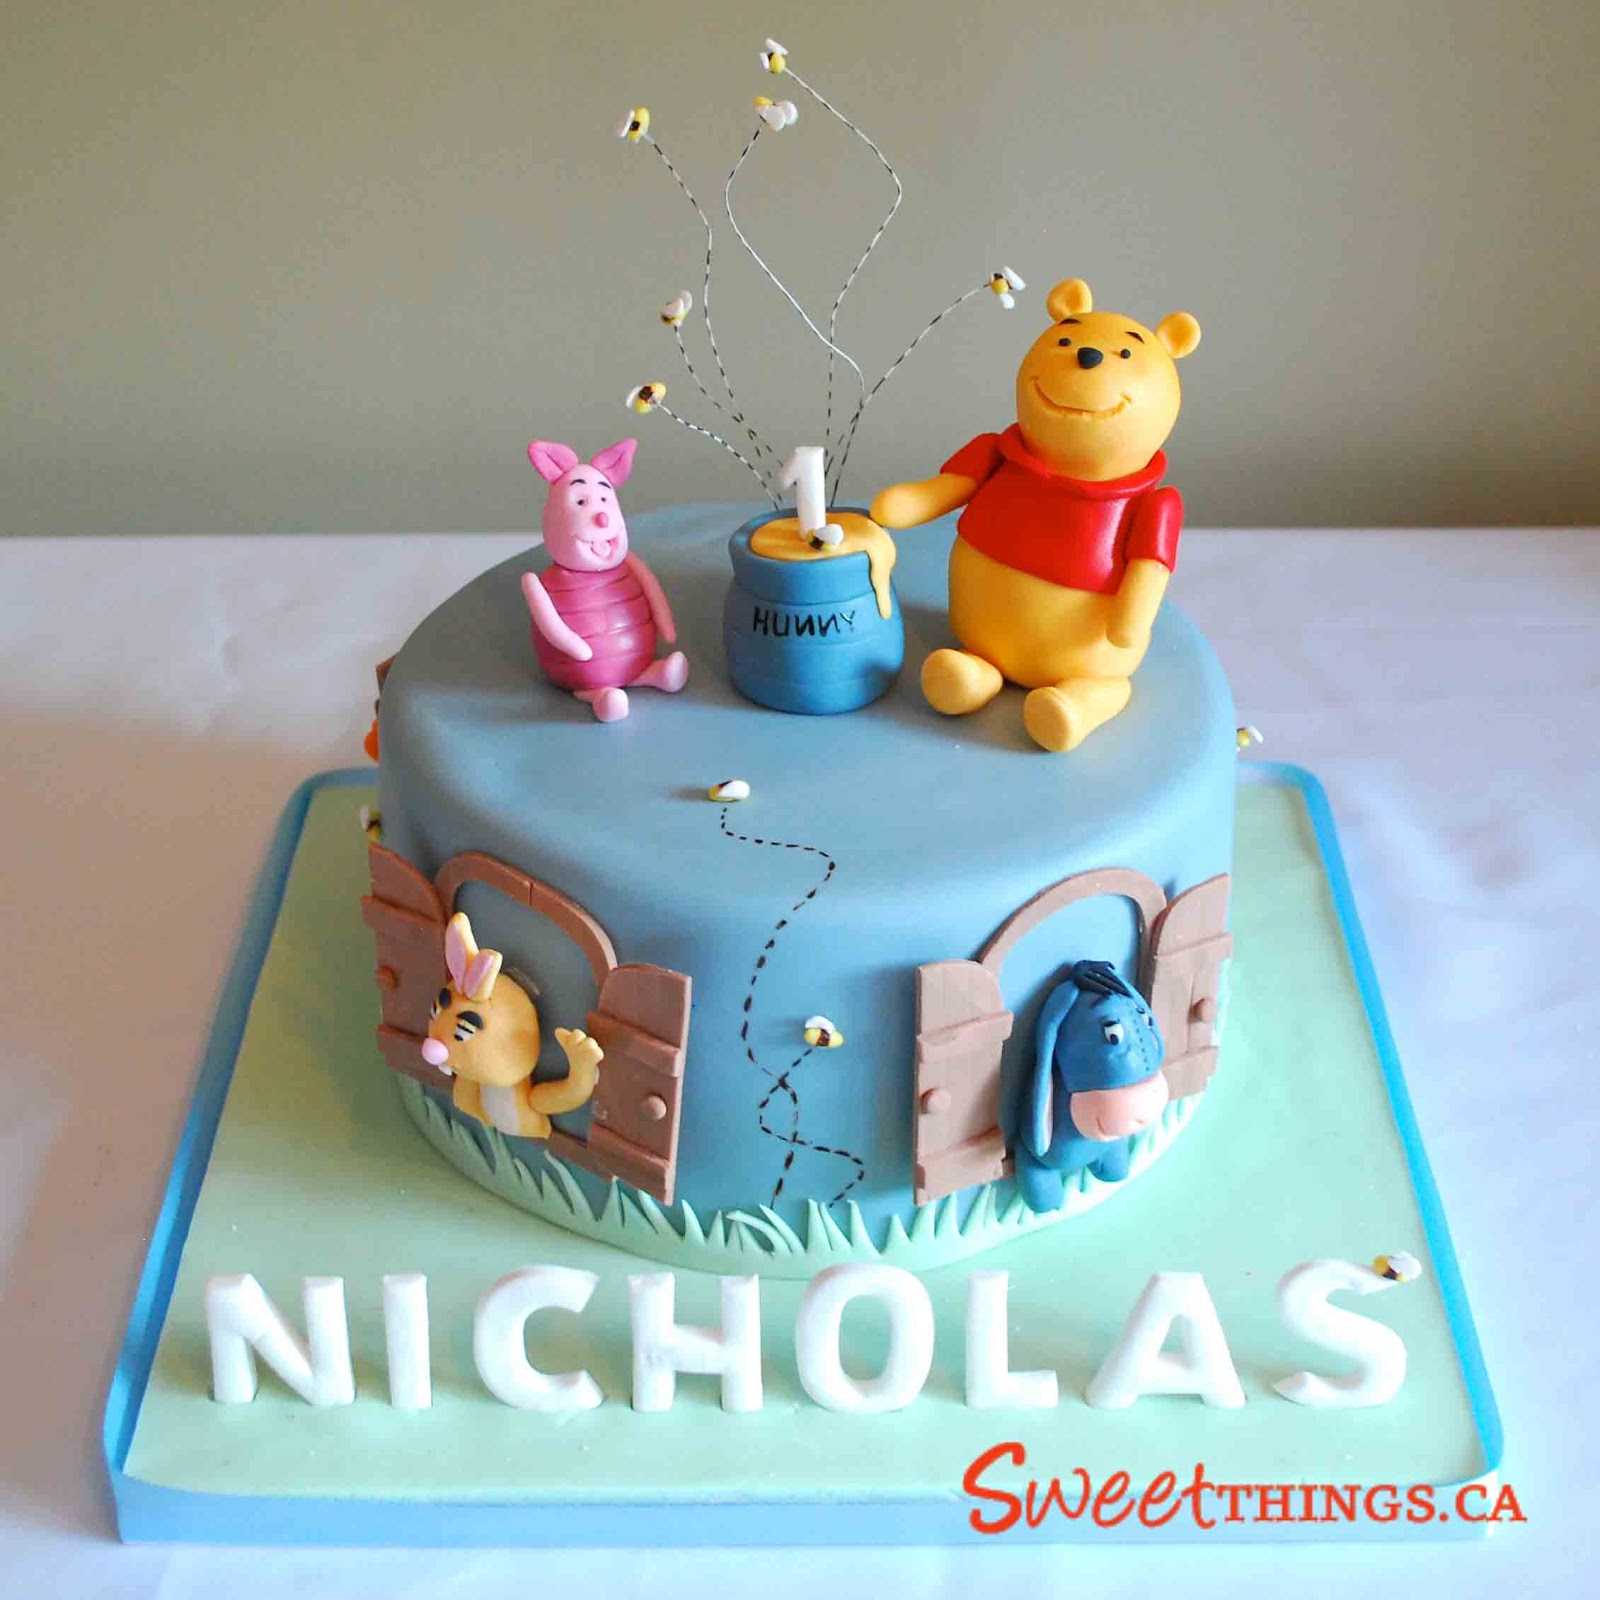 I Was Excited To Do A 1st Birthday Cake With The Modern And More Colorful Winnie Pooh Characters